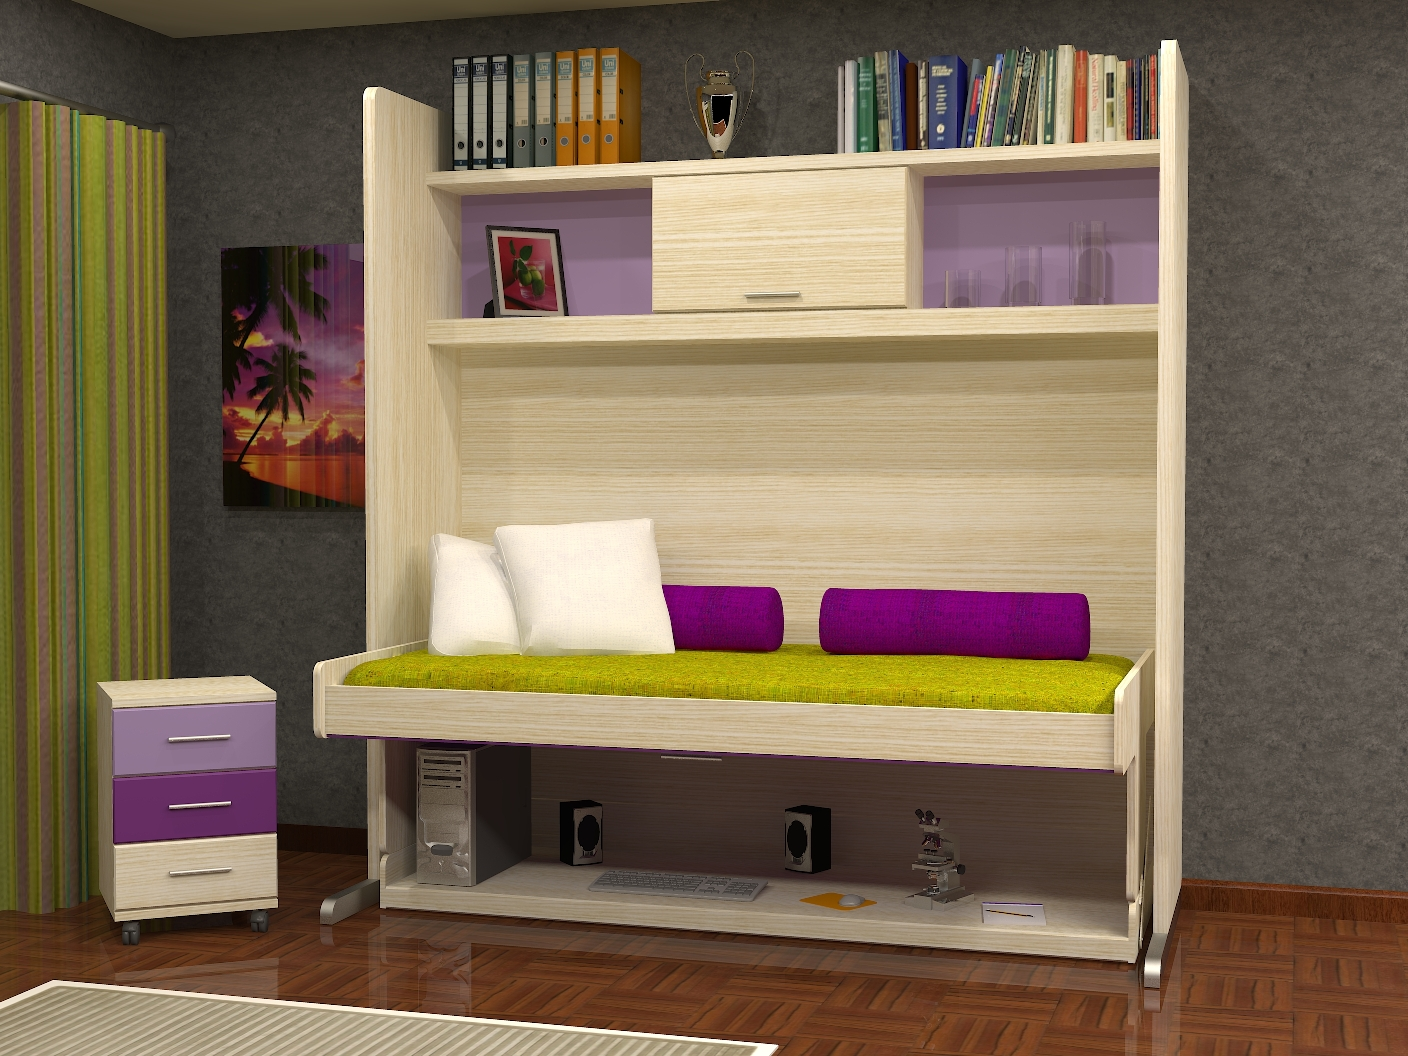 Cama mesa abatible camas autoportantes muebles parchis - Litera plegable pared ...